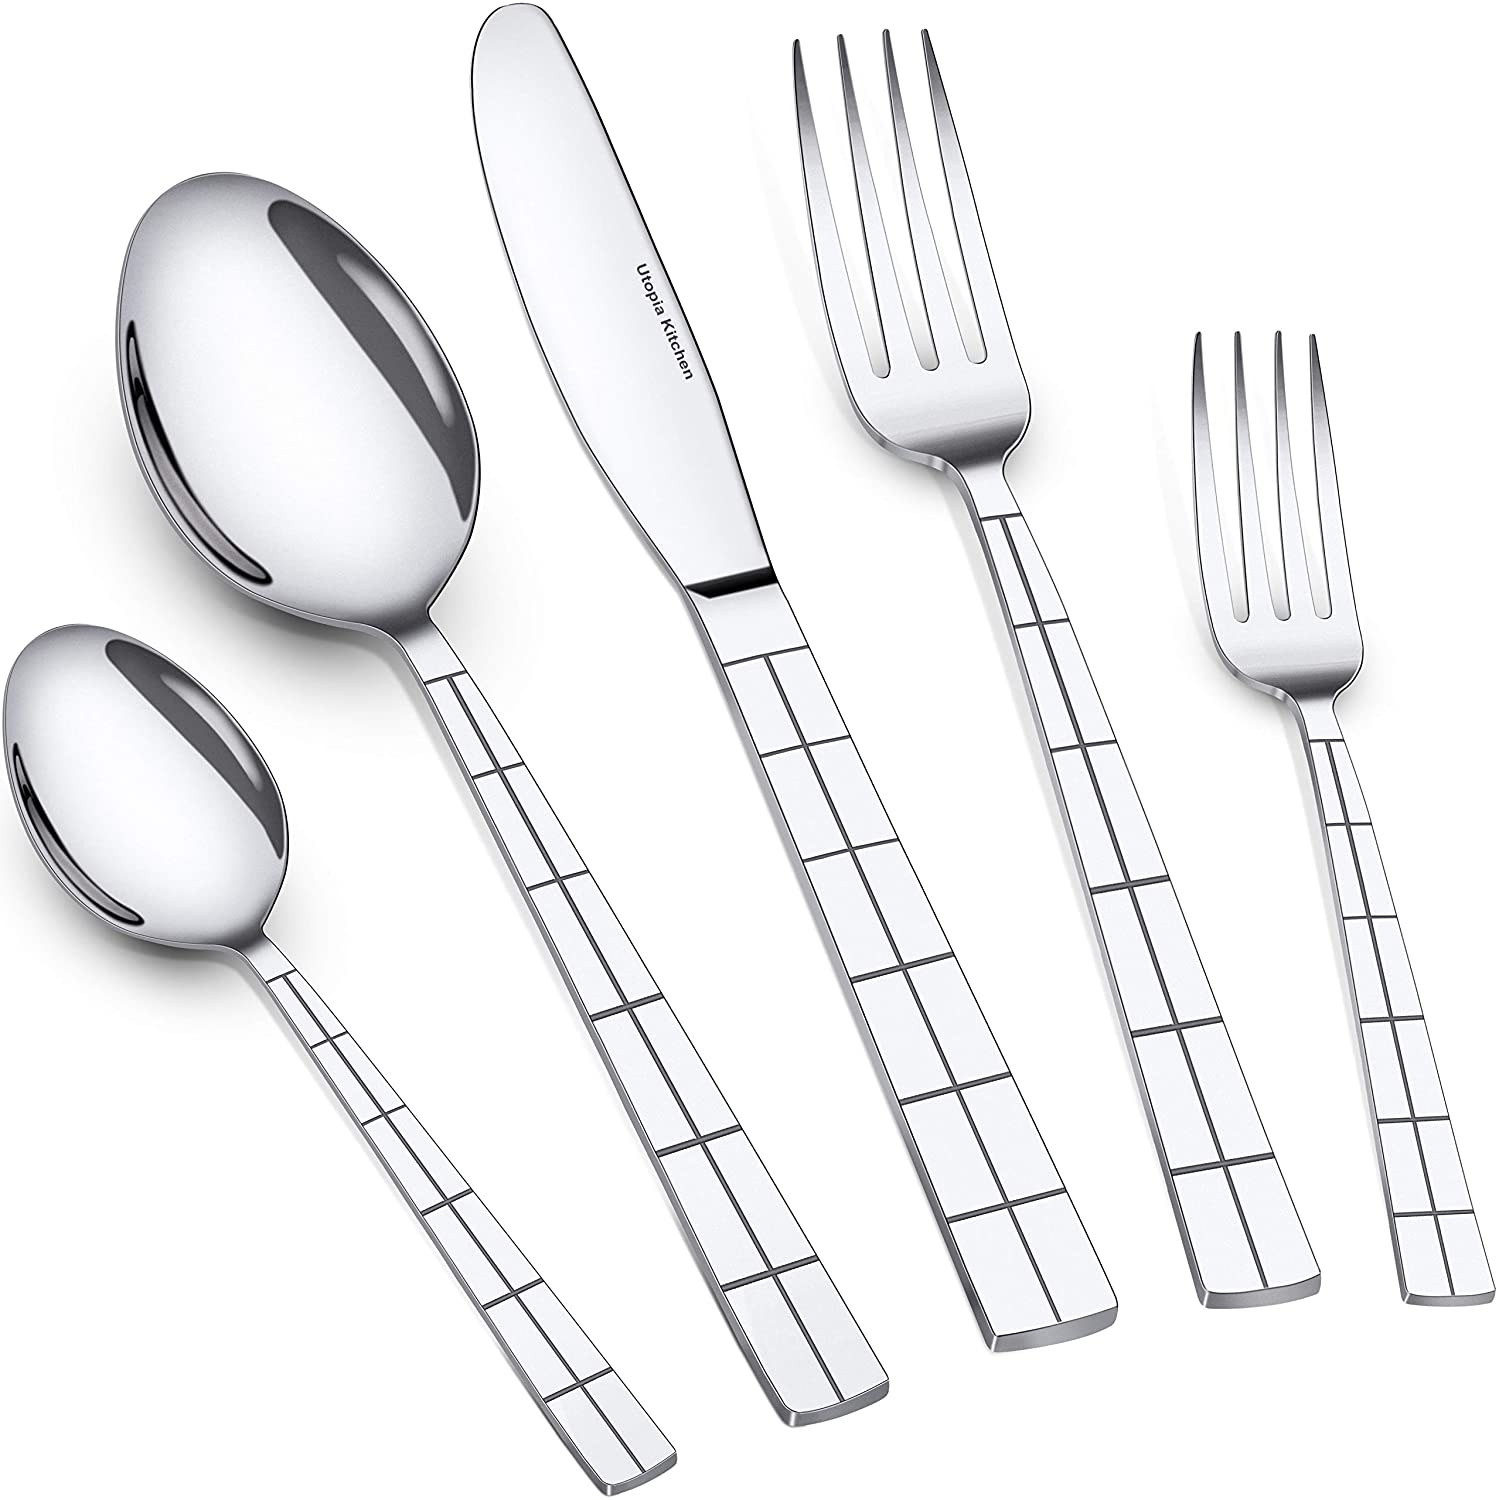 Utopia Kitchen 20 Piece Flatware Set Silverware Set Stainless Steel Service for 4 Multipurpose Use for Home Kitchen or Restaurant UK0376